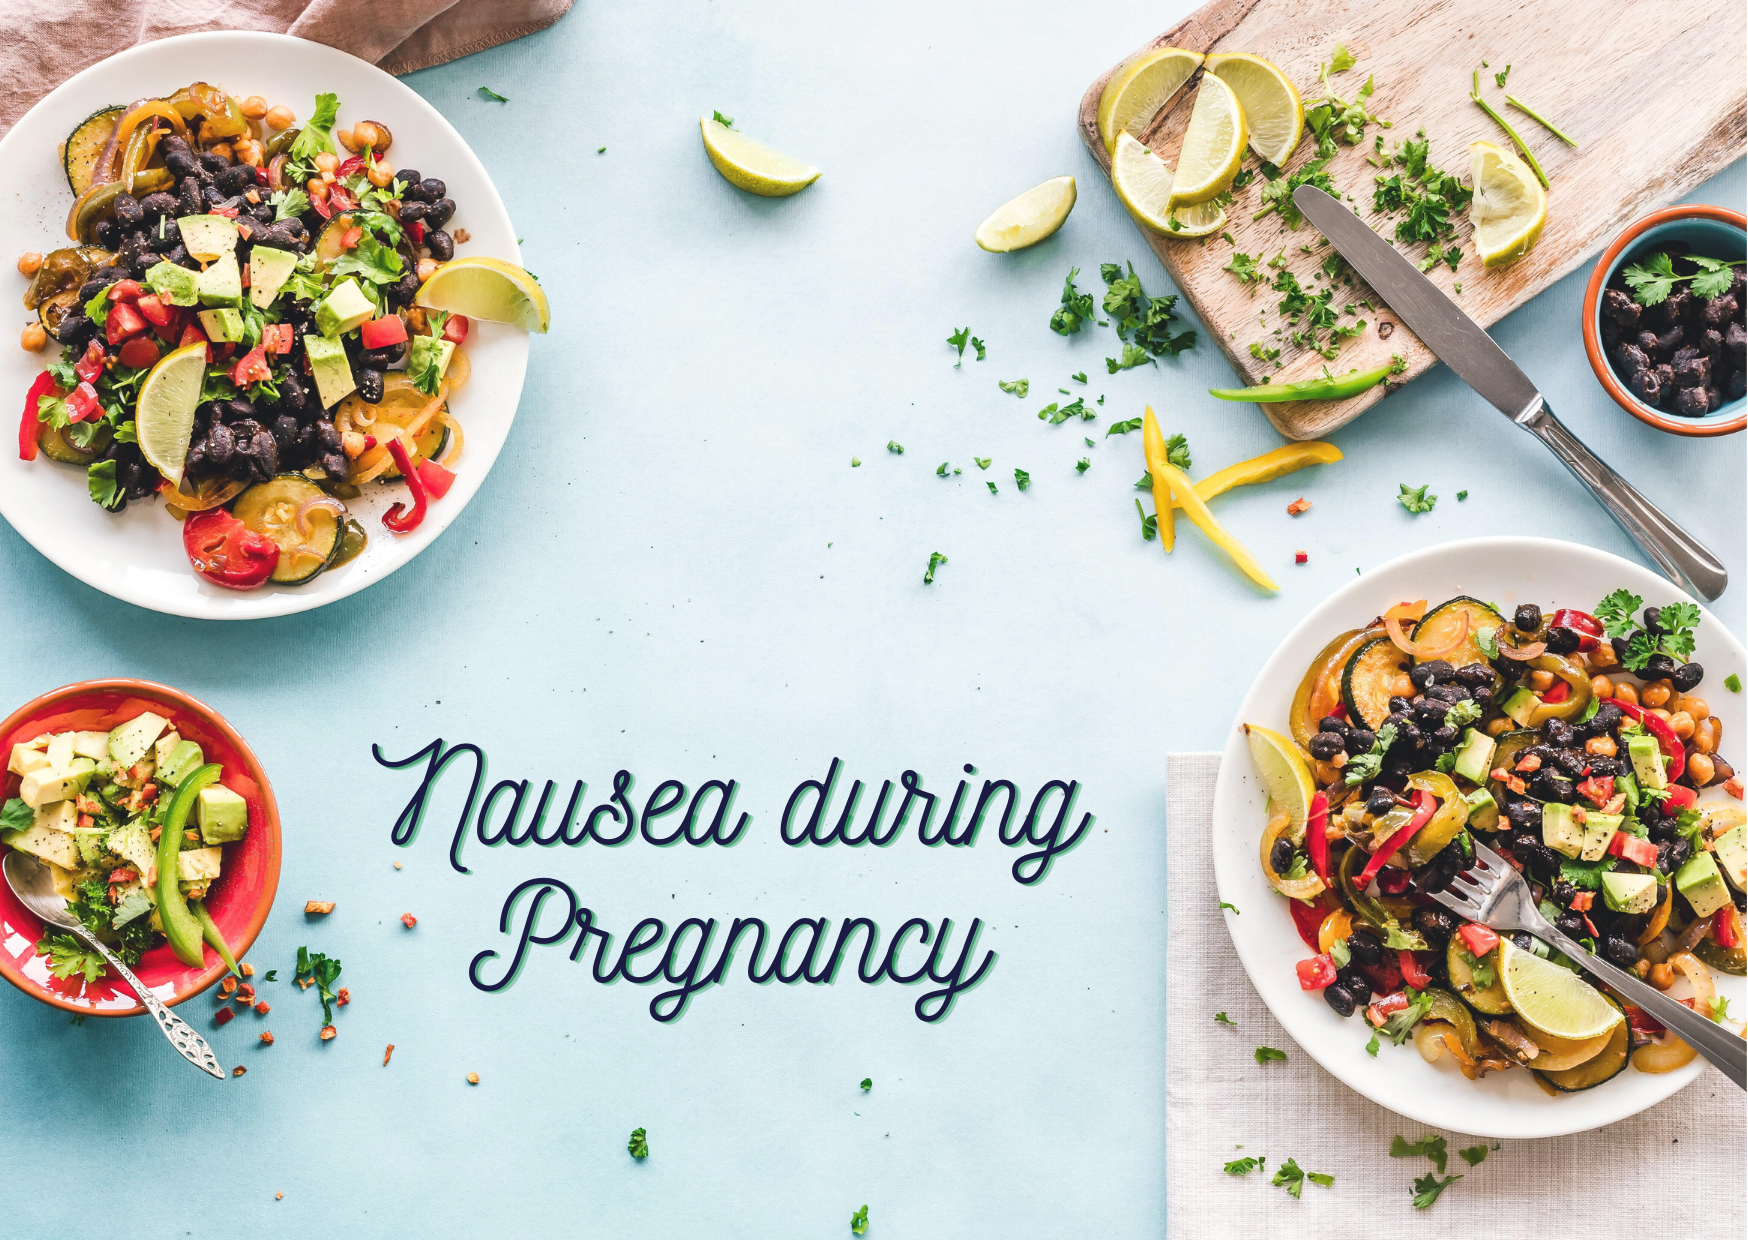 VenoSupport explains how to relieve nausea during pregnance